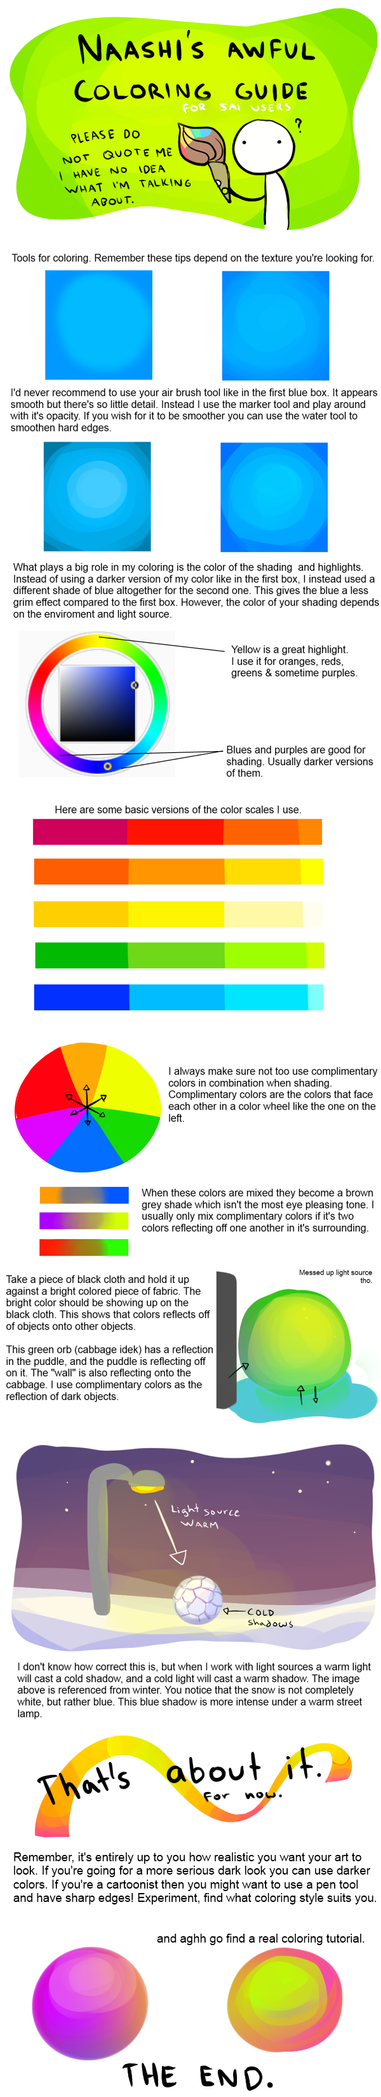 Naashi's Awful Coloring Guide by Naashi